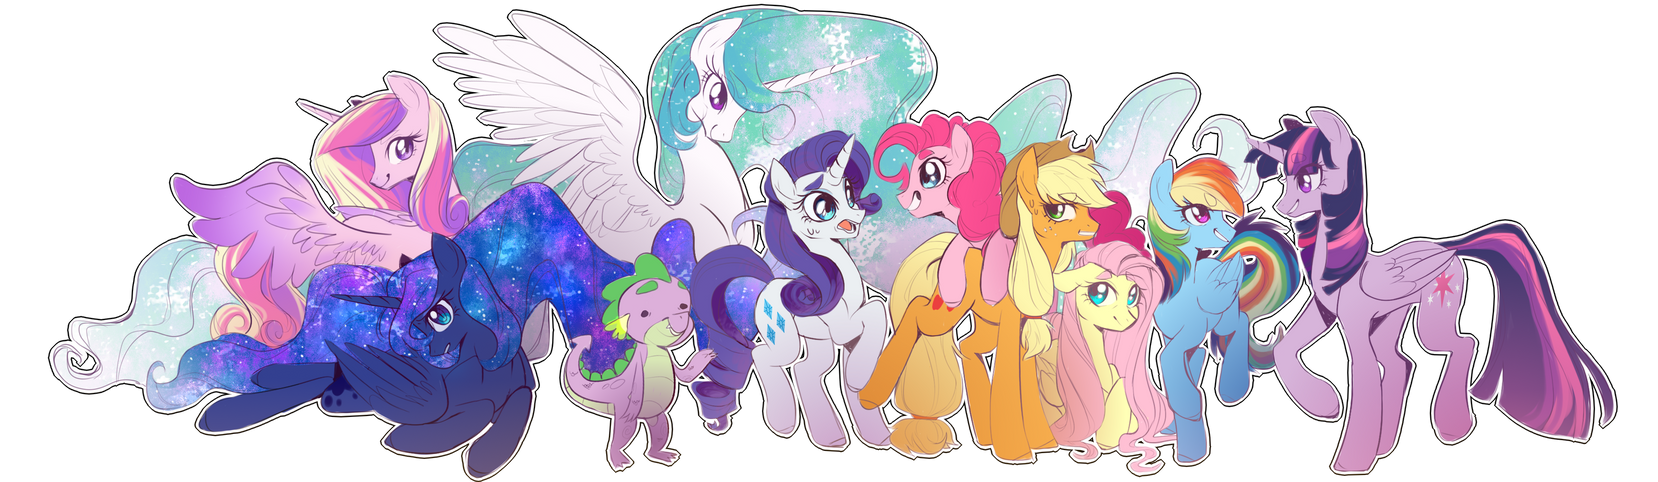 Ponies sticker by Kag-Bag on DeviantArt 2a28bfe7e